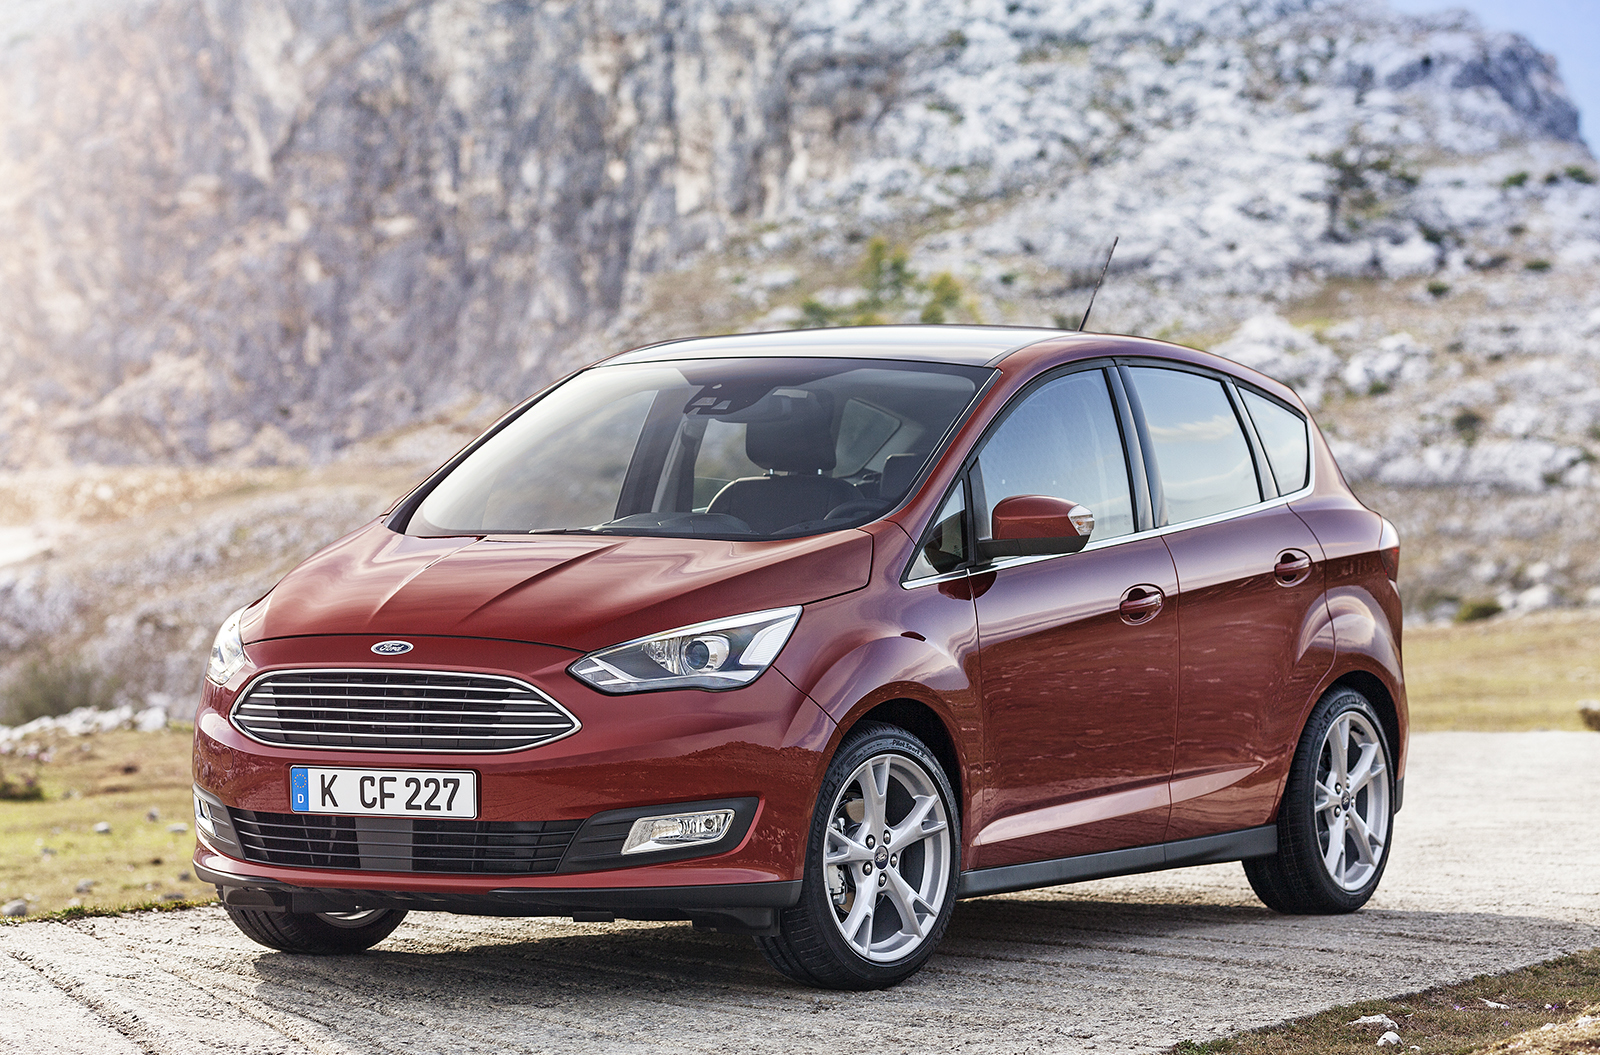 2015 Ford S-Max: Paris 2014 Photo Gallery - Autoblog